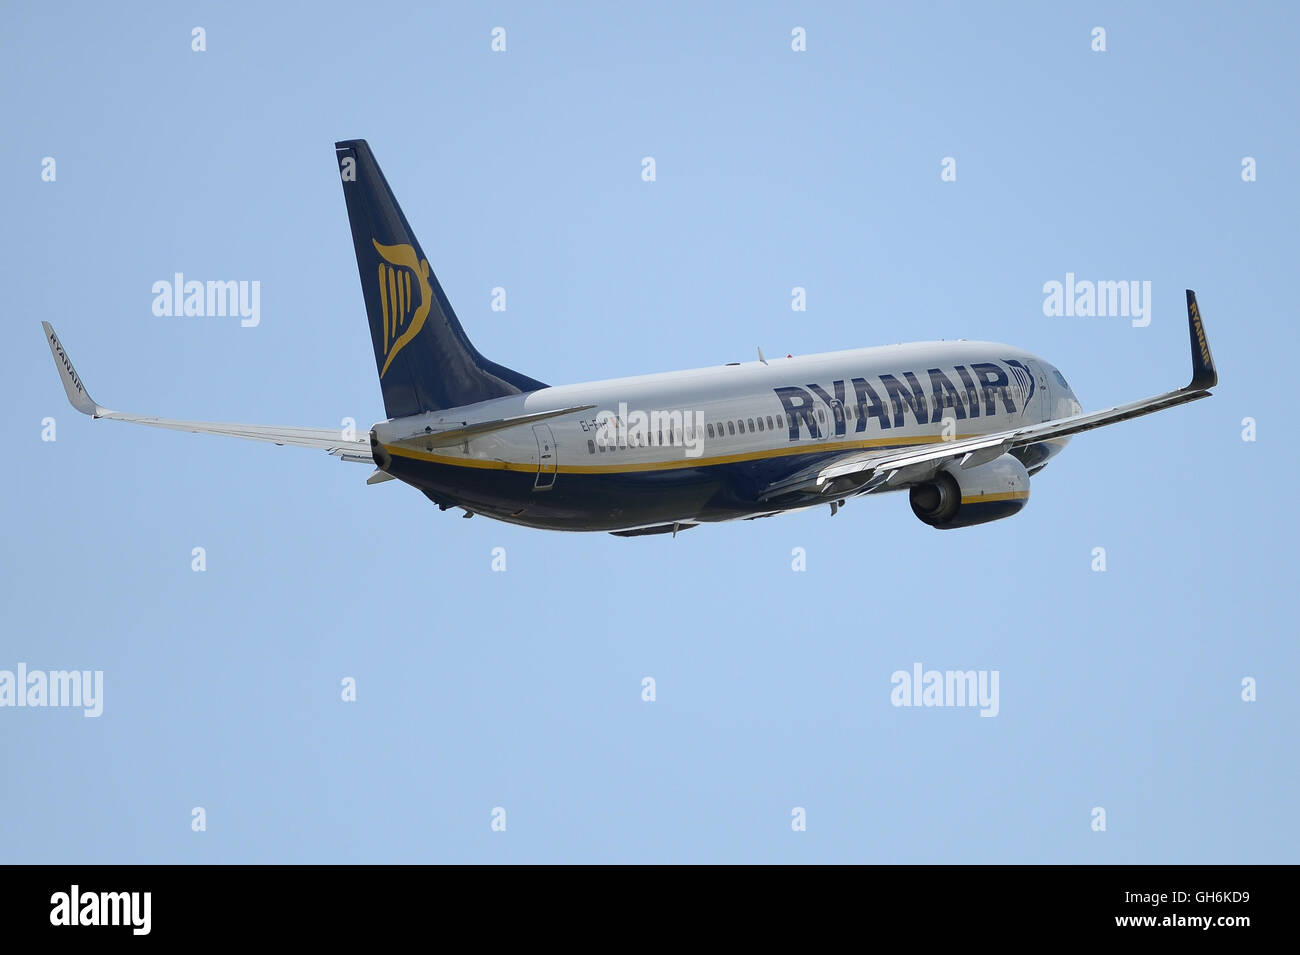 Ryanair plane takes off from East Midlands Airport in the UK - Stock Image